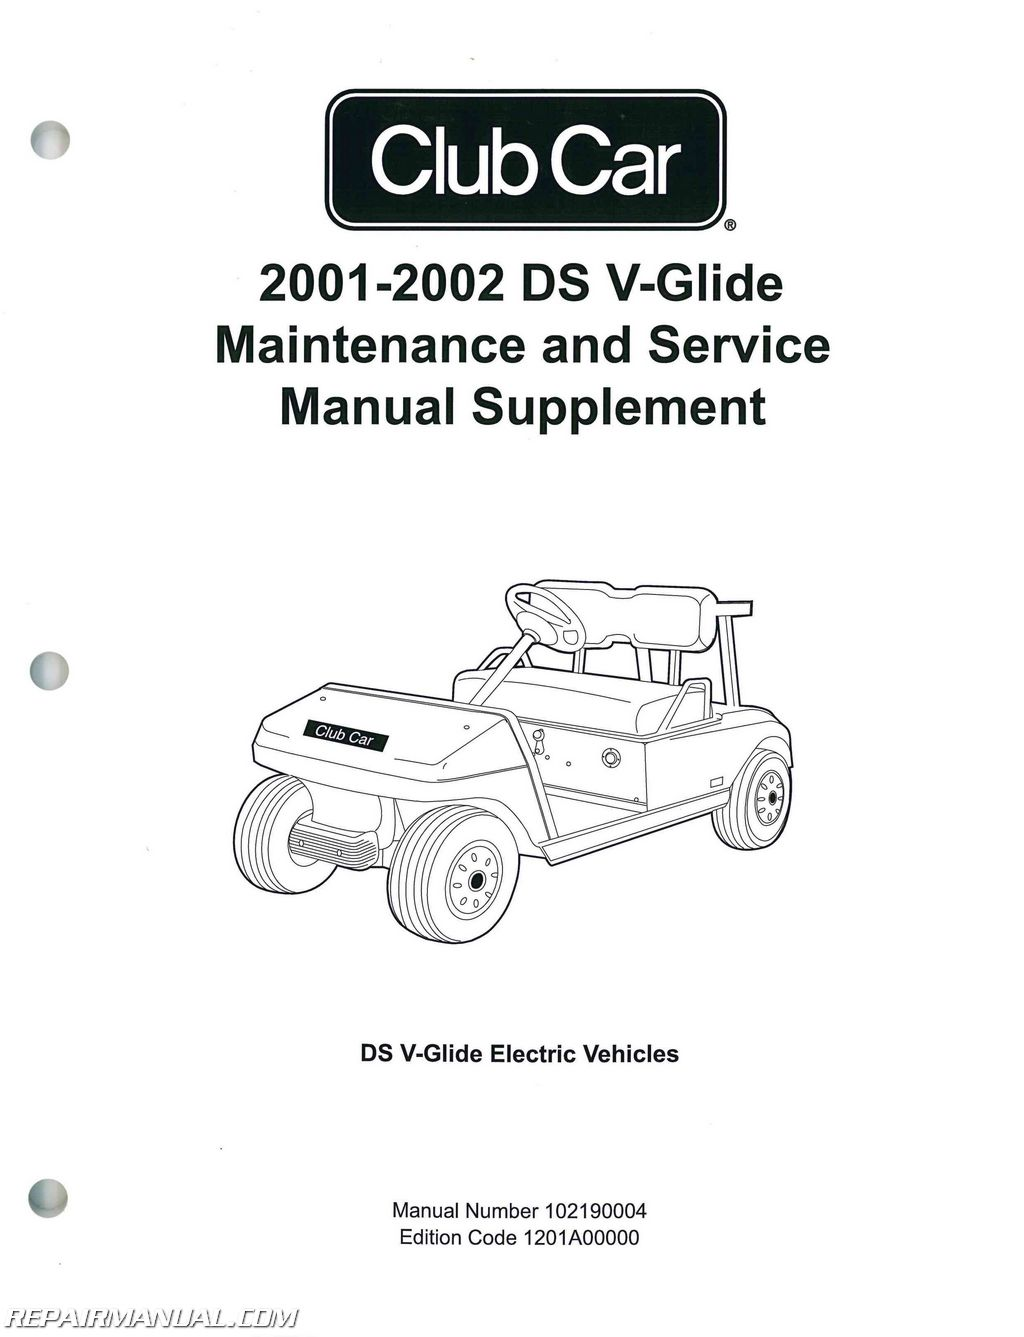 Wiring Diagram For Gas Powered Club Car Wire Data Schema Source · 2001 2002 club  car ds v glide golf car maintenance and service rh repairmanual com ...